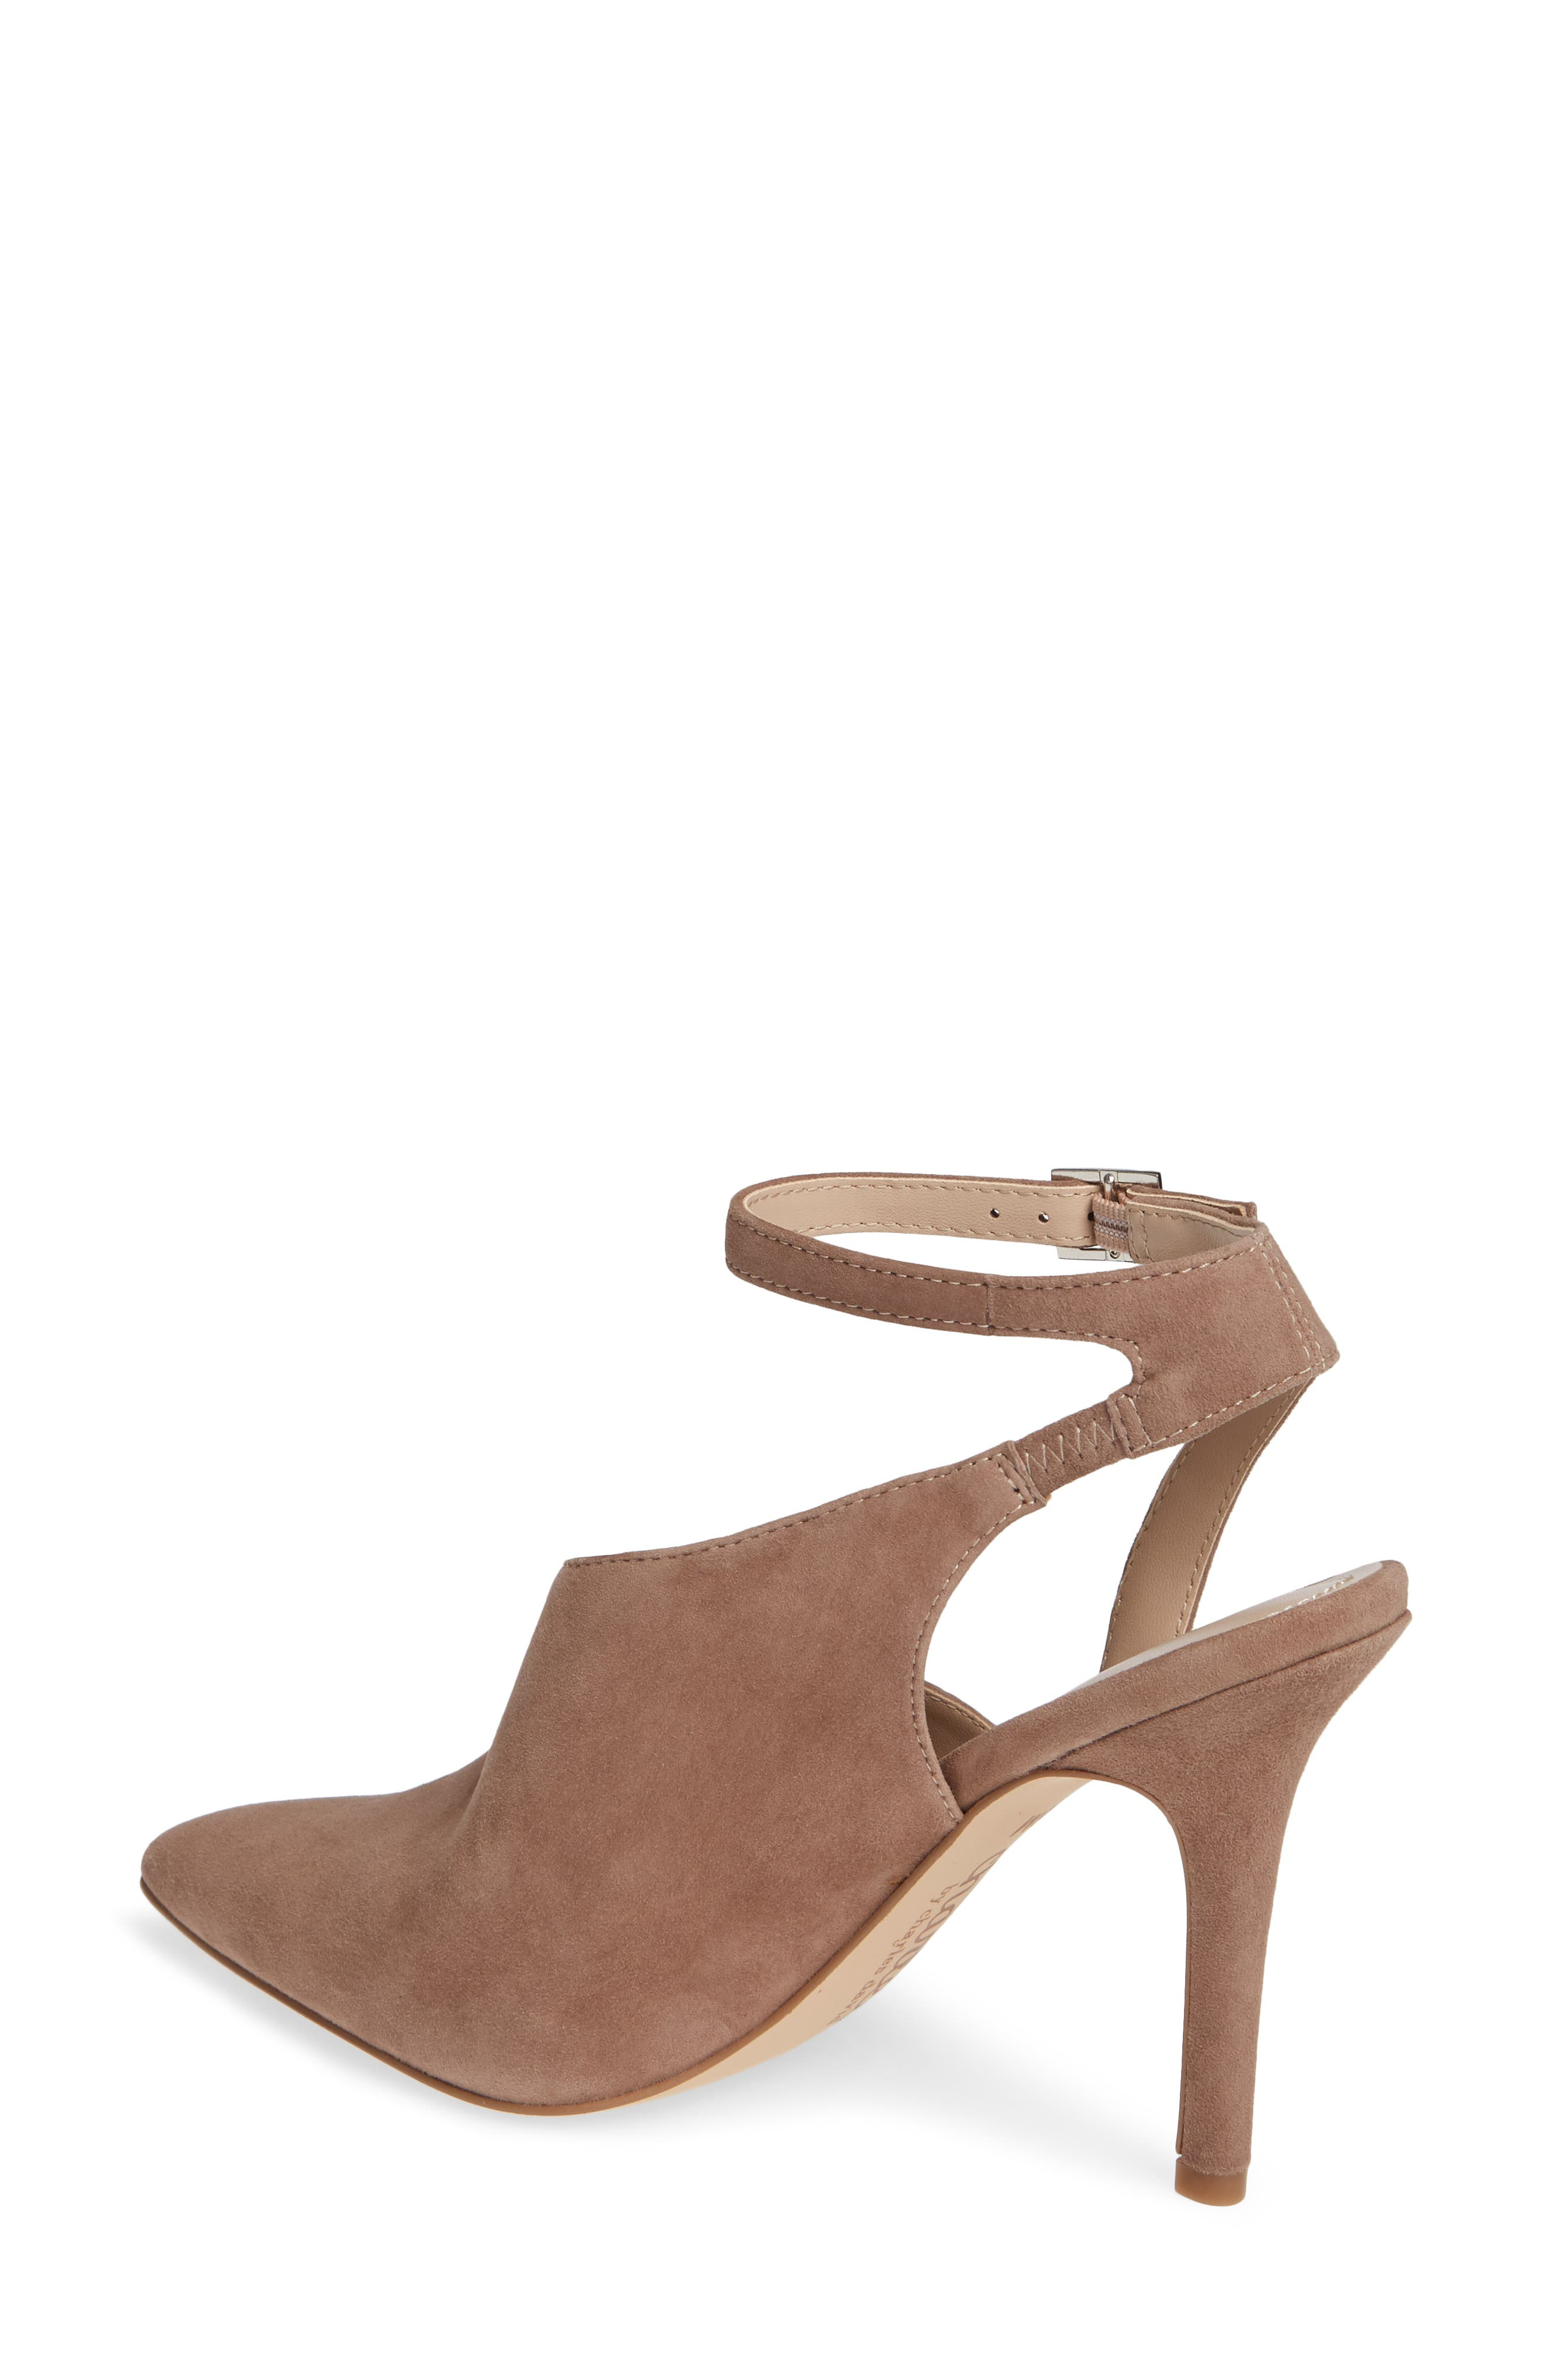 CHARLES BY CHARLES DAVID, Mieko Pump, Alternate thumbnail 2, color, TAUPE SUEDE